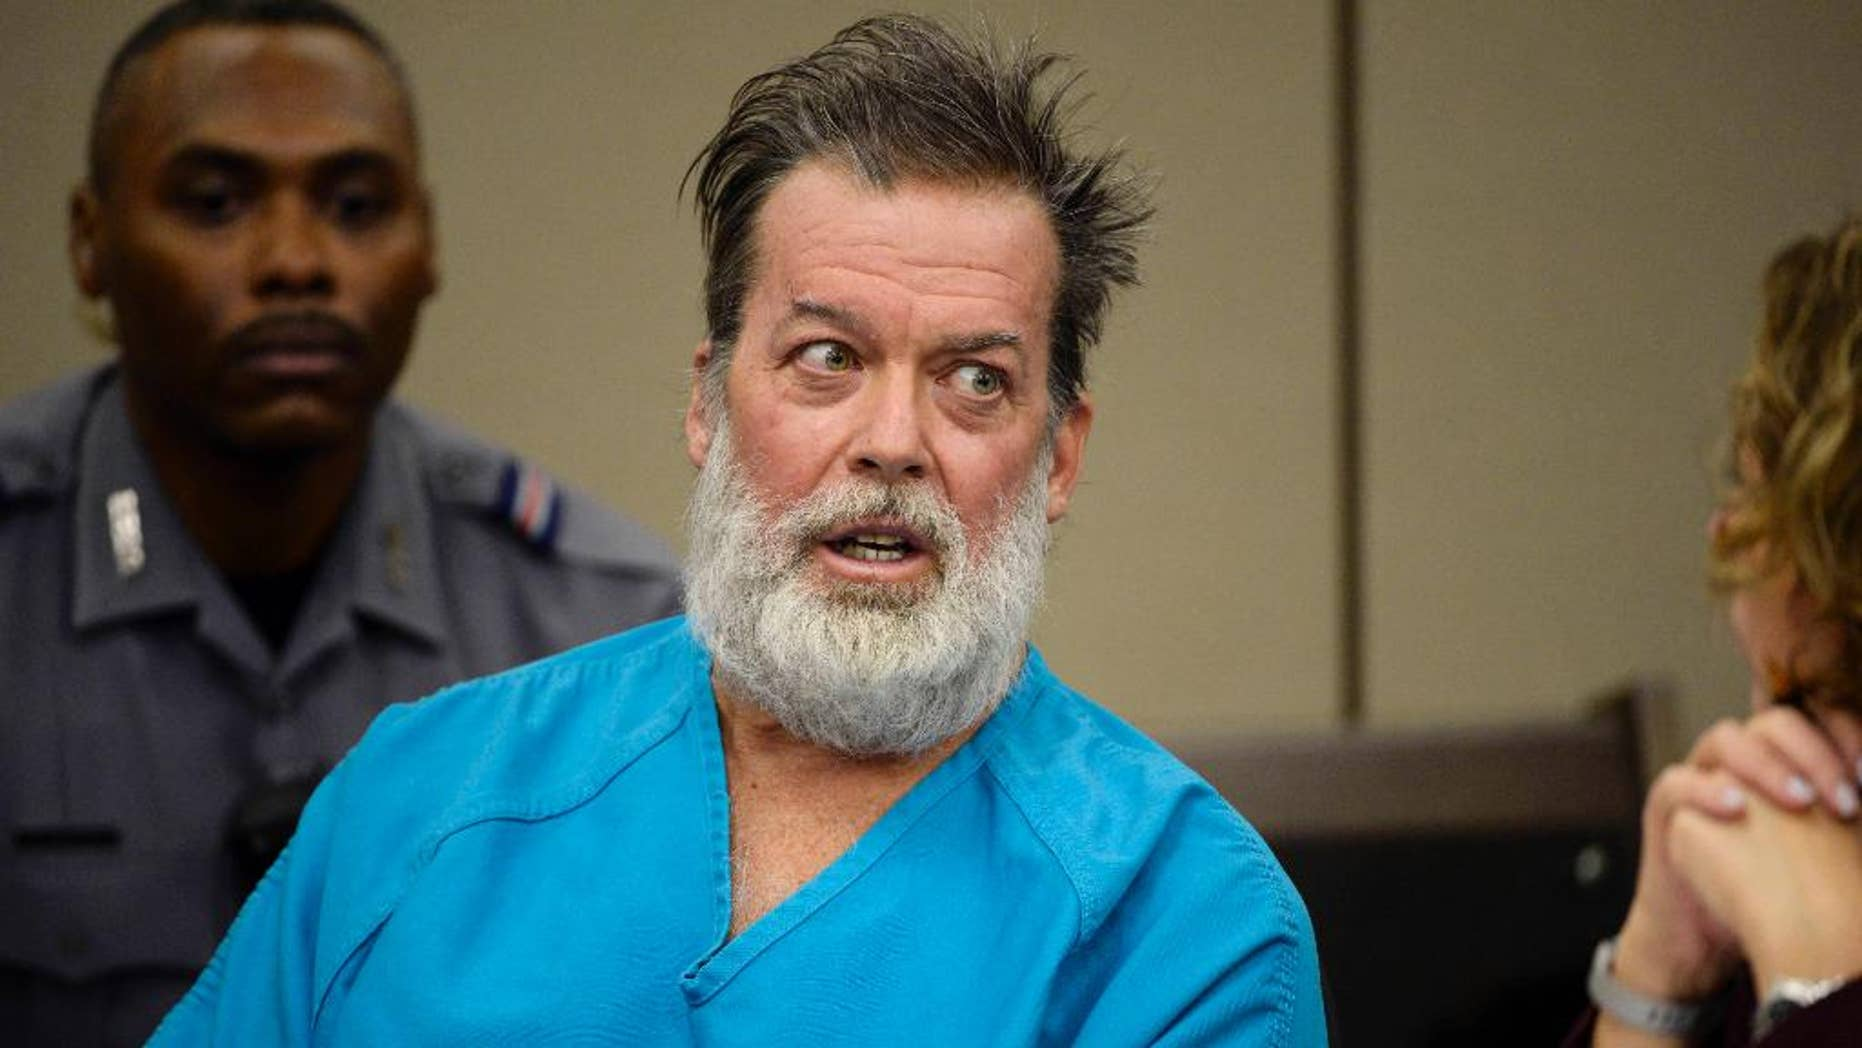 FILE - In this Dec. 9, 2015 file photo, Robert Lewis Dear, middle, talks during a court appearance in Colorado Springs, Colo. The man who acknowledges killing three people at a Colorado Planned Parenthood clinic will return to court for a discussion of his mental health. The Thursday, April 28, 2016 hearing will focus on whether 57-year-old Dear is competent to continue with his criminal case. (Andy Cross/The Denver Post via AP, Pool, File)